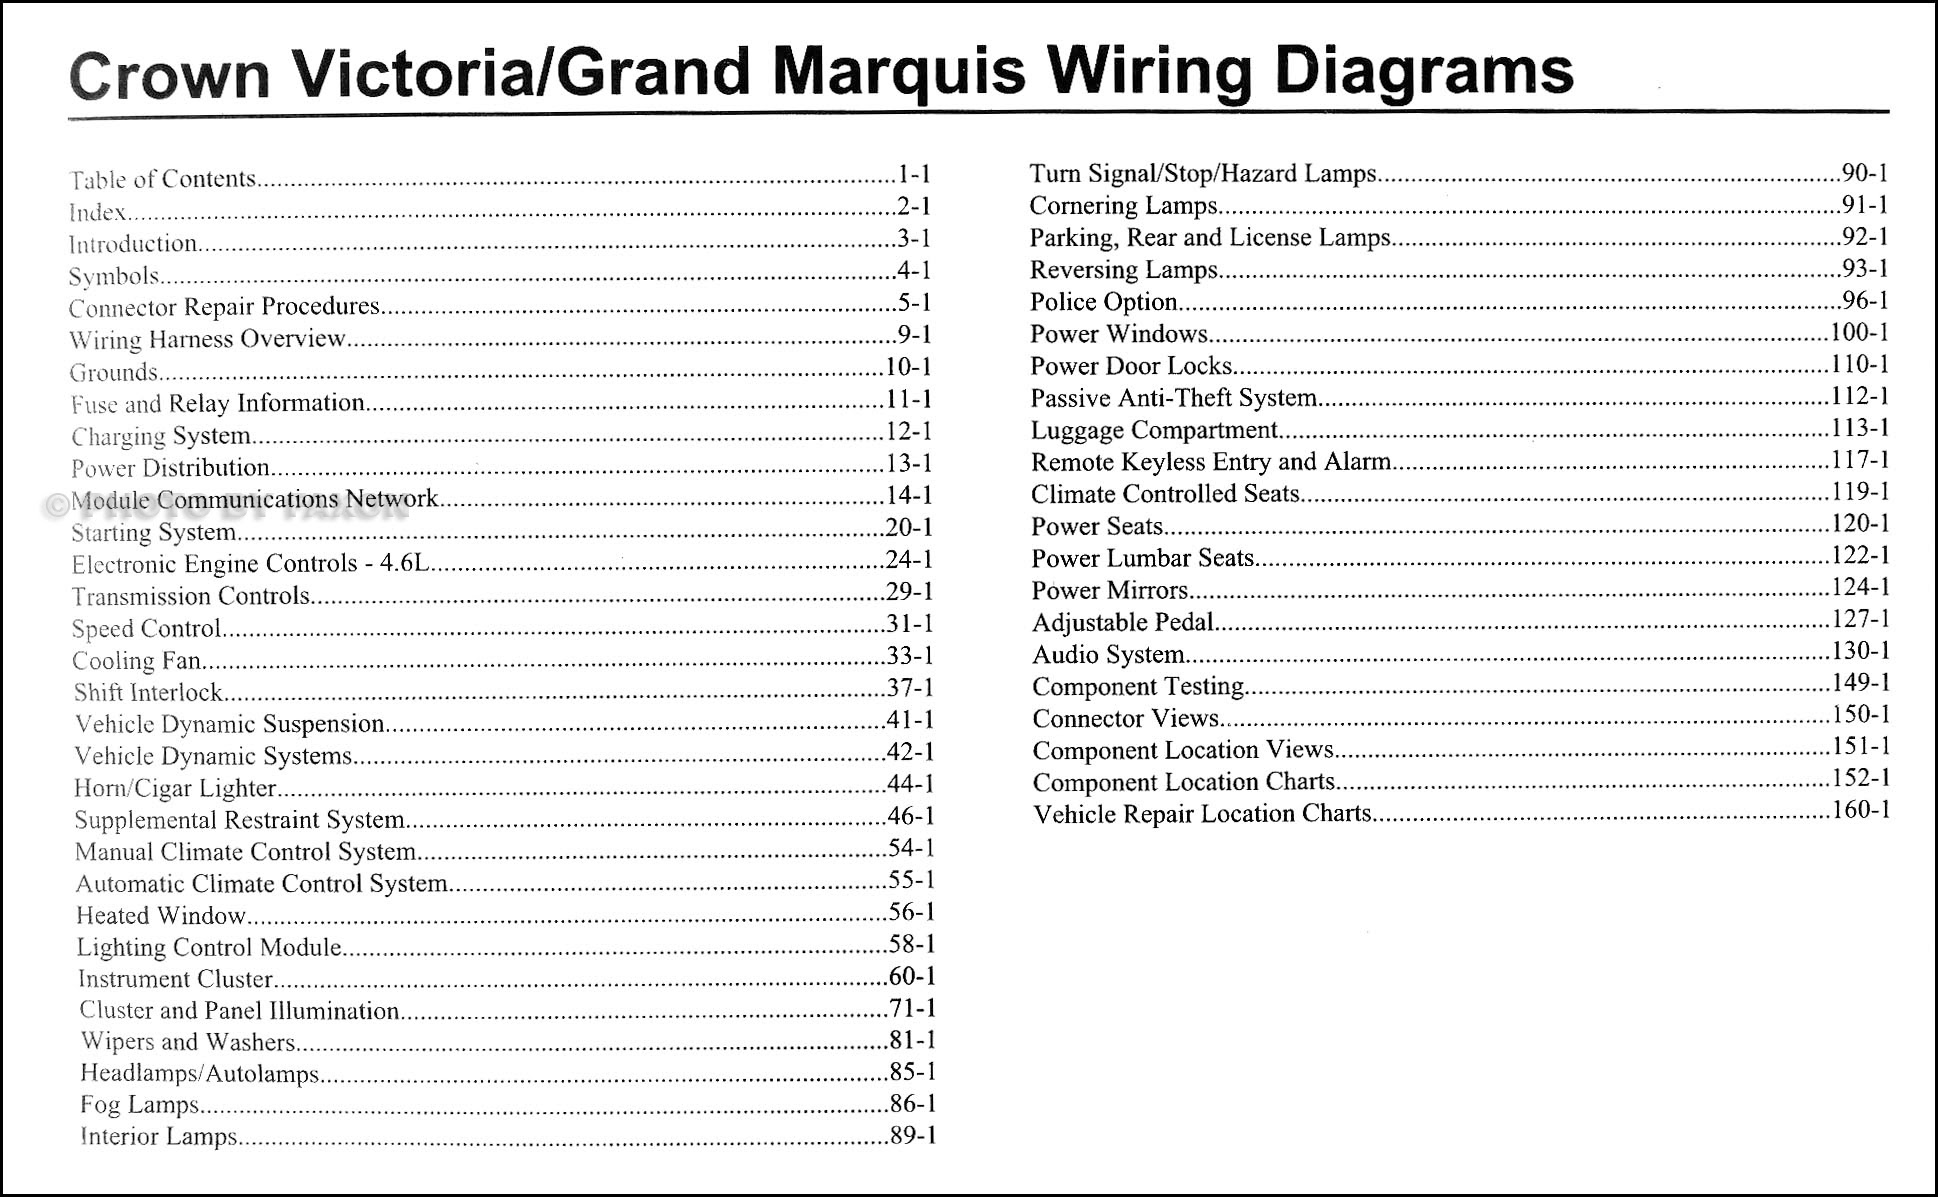 Diagram 2002 Crown Victoria Grand Marquis Original Wiring Diagram Manual Full Version Hd Quality Diagram Manual Diagramloviem Gisbertovalori It